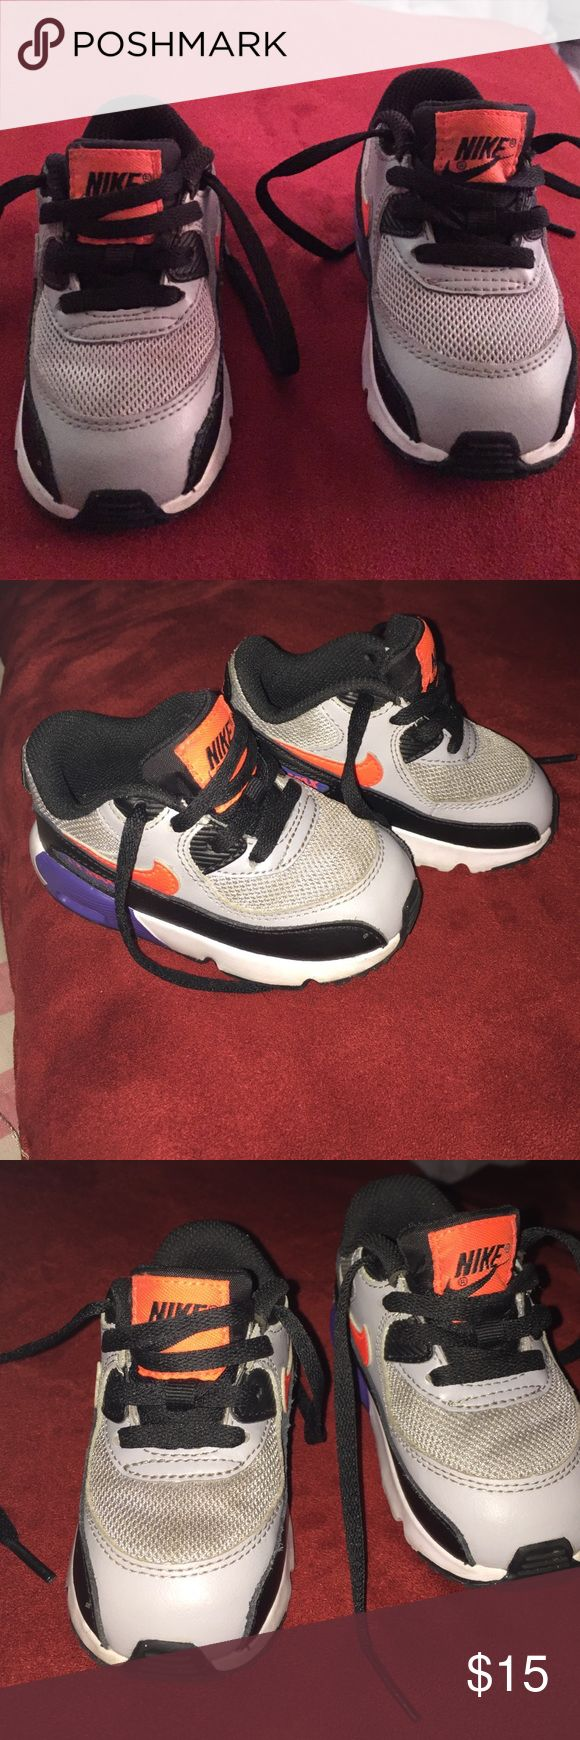 Toddler air max sneakers Toddler boys air max sneakers size 6 c used in gtreat condition air max Shoes Sneakers